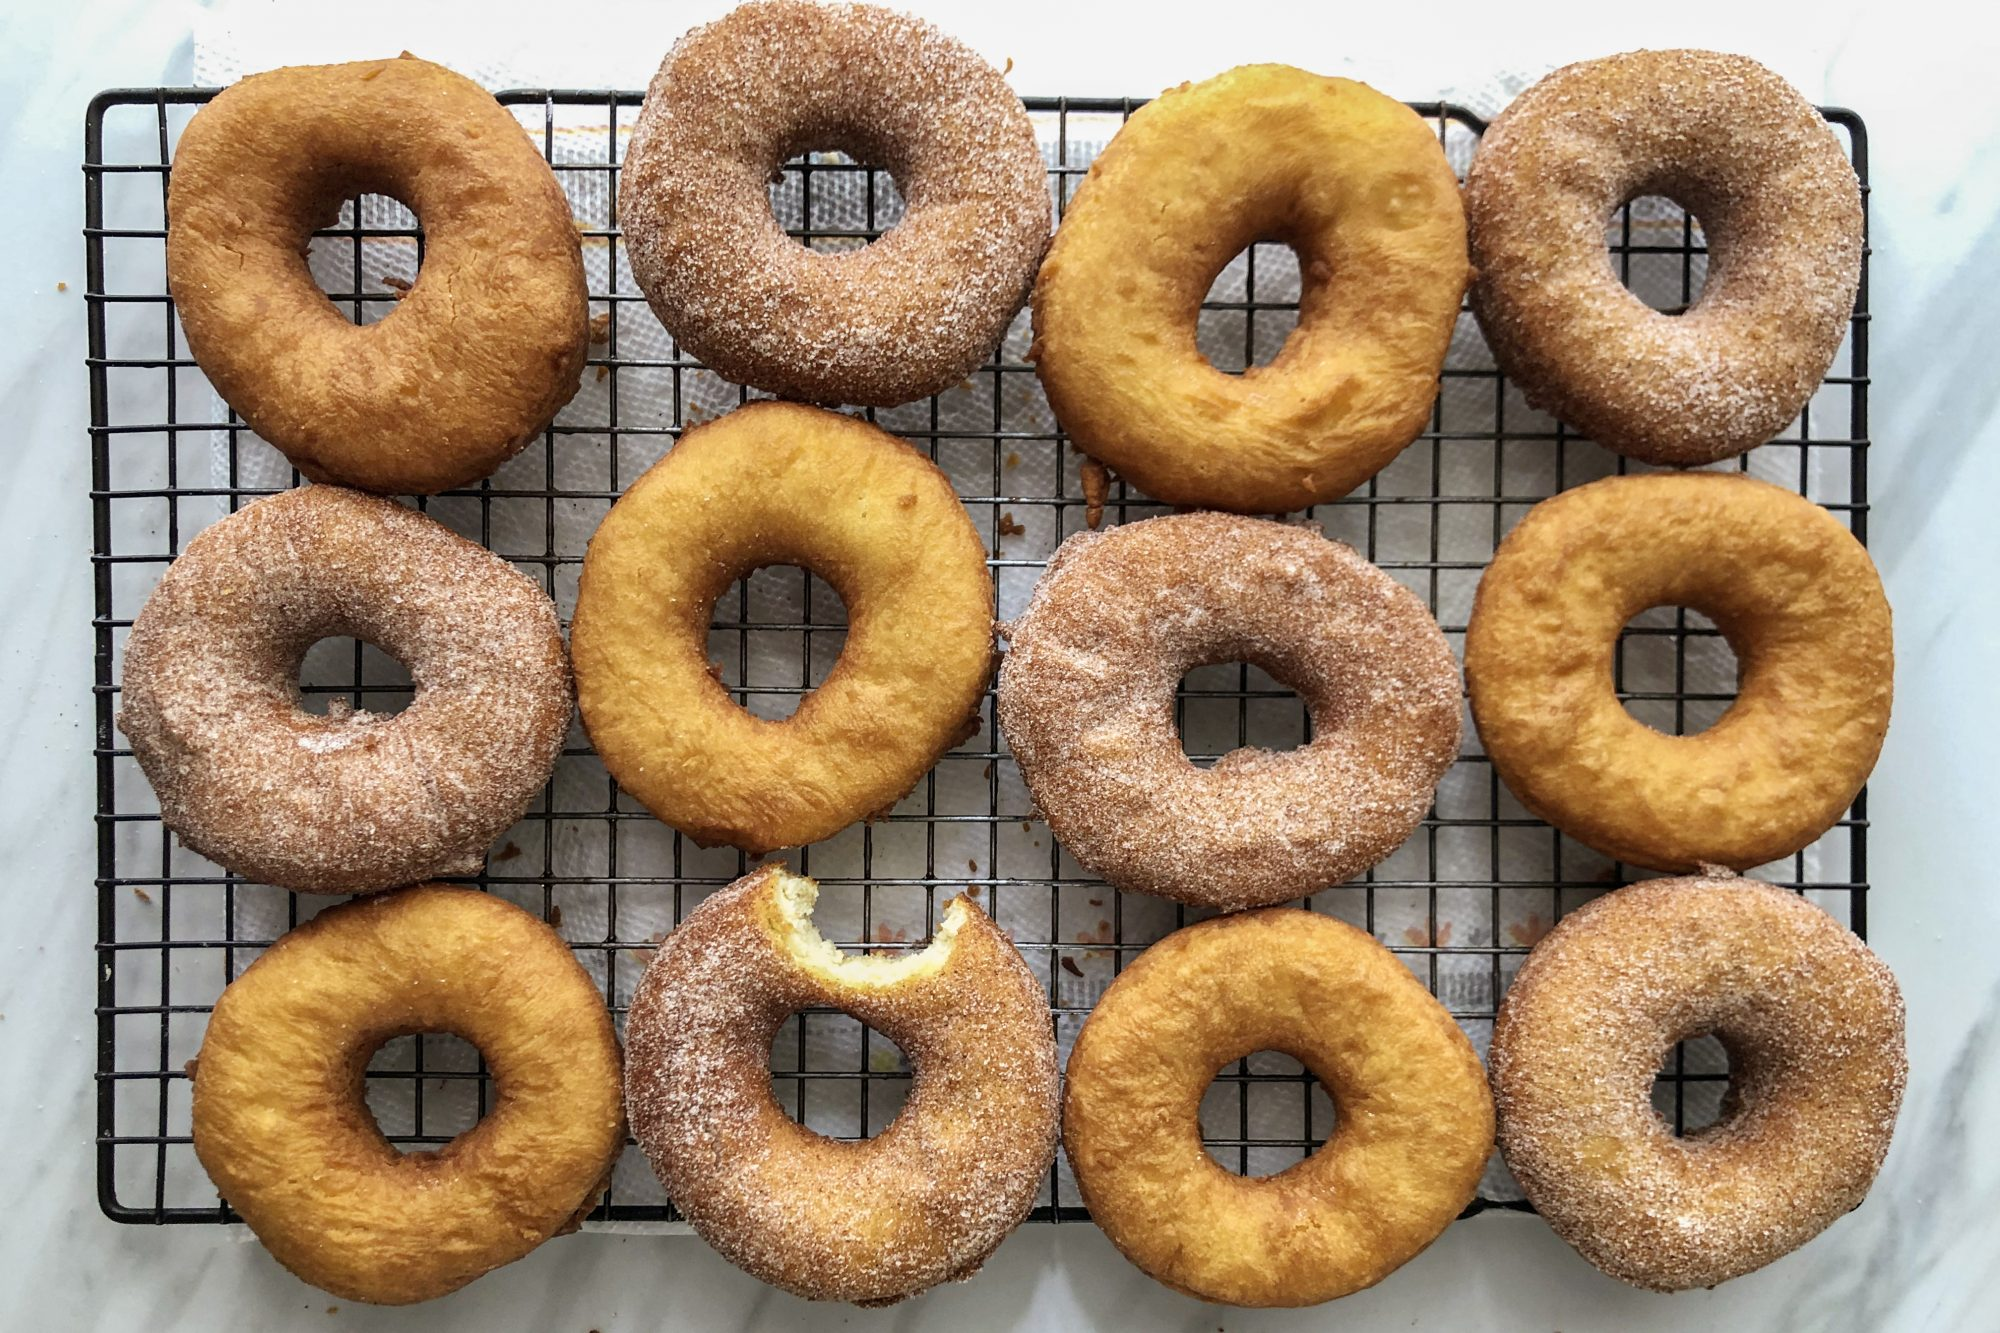 A dozen freshly fried grandma's old-fashioned cake donuts sit on a cooling rack. half are dusted in cinnamon and sugar, and one has a bite taken out